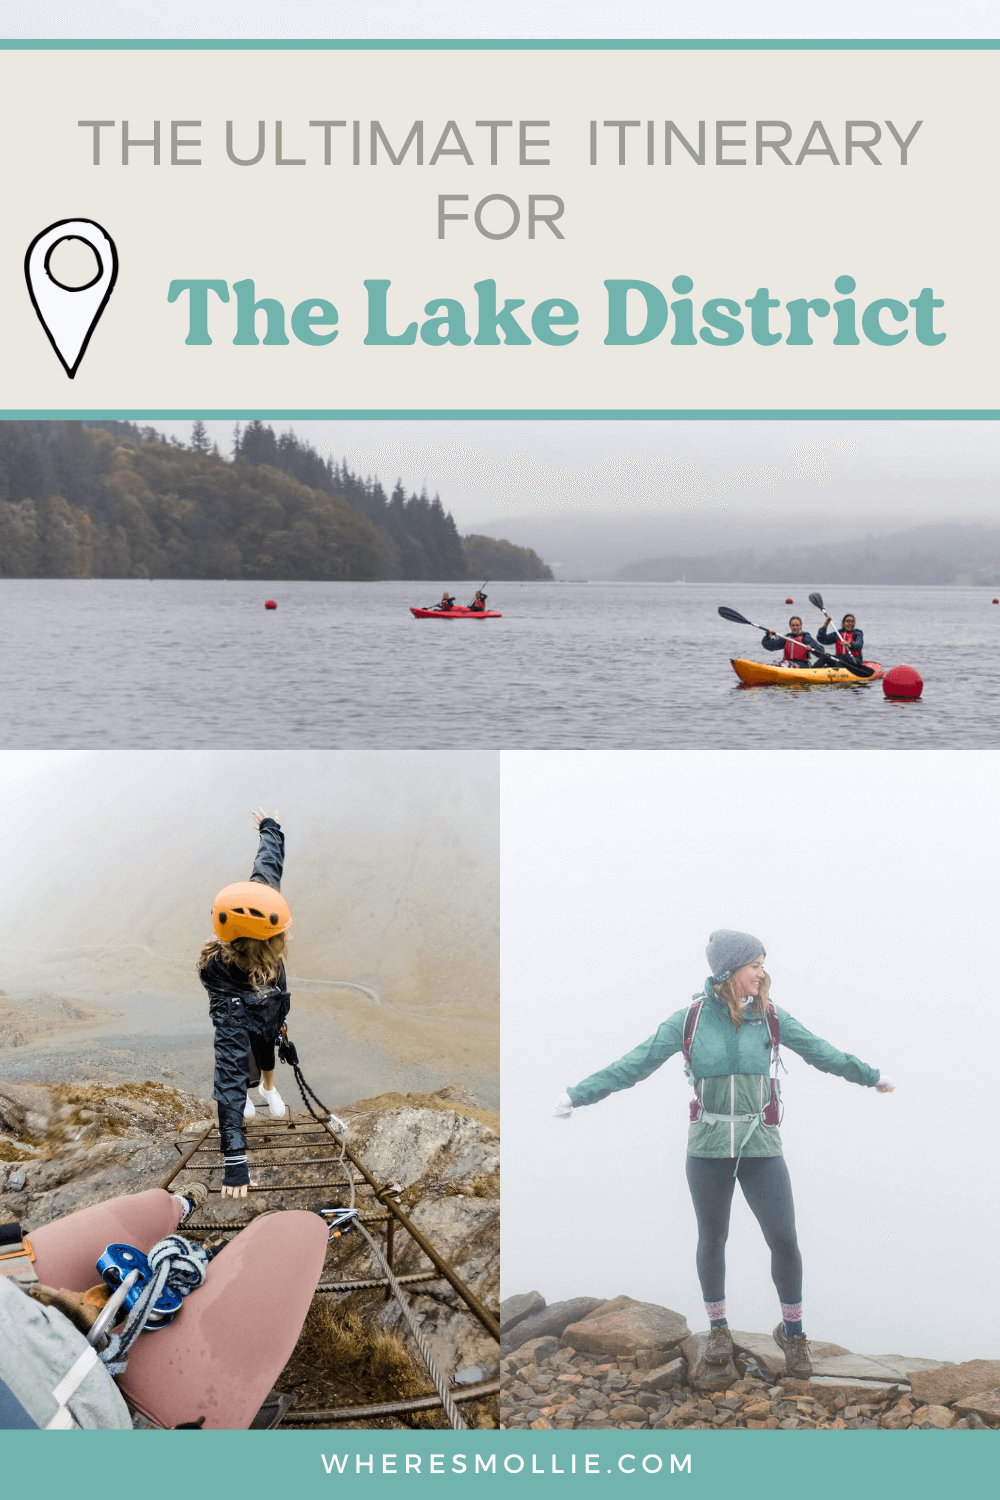 A 3-day itinerary for The Lake District National Park